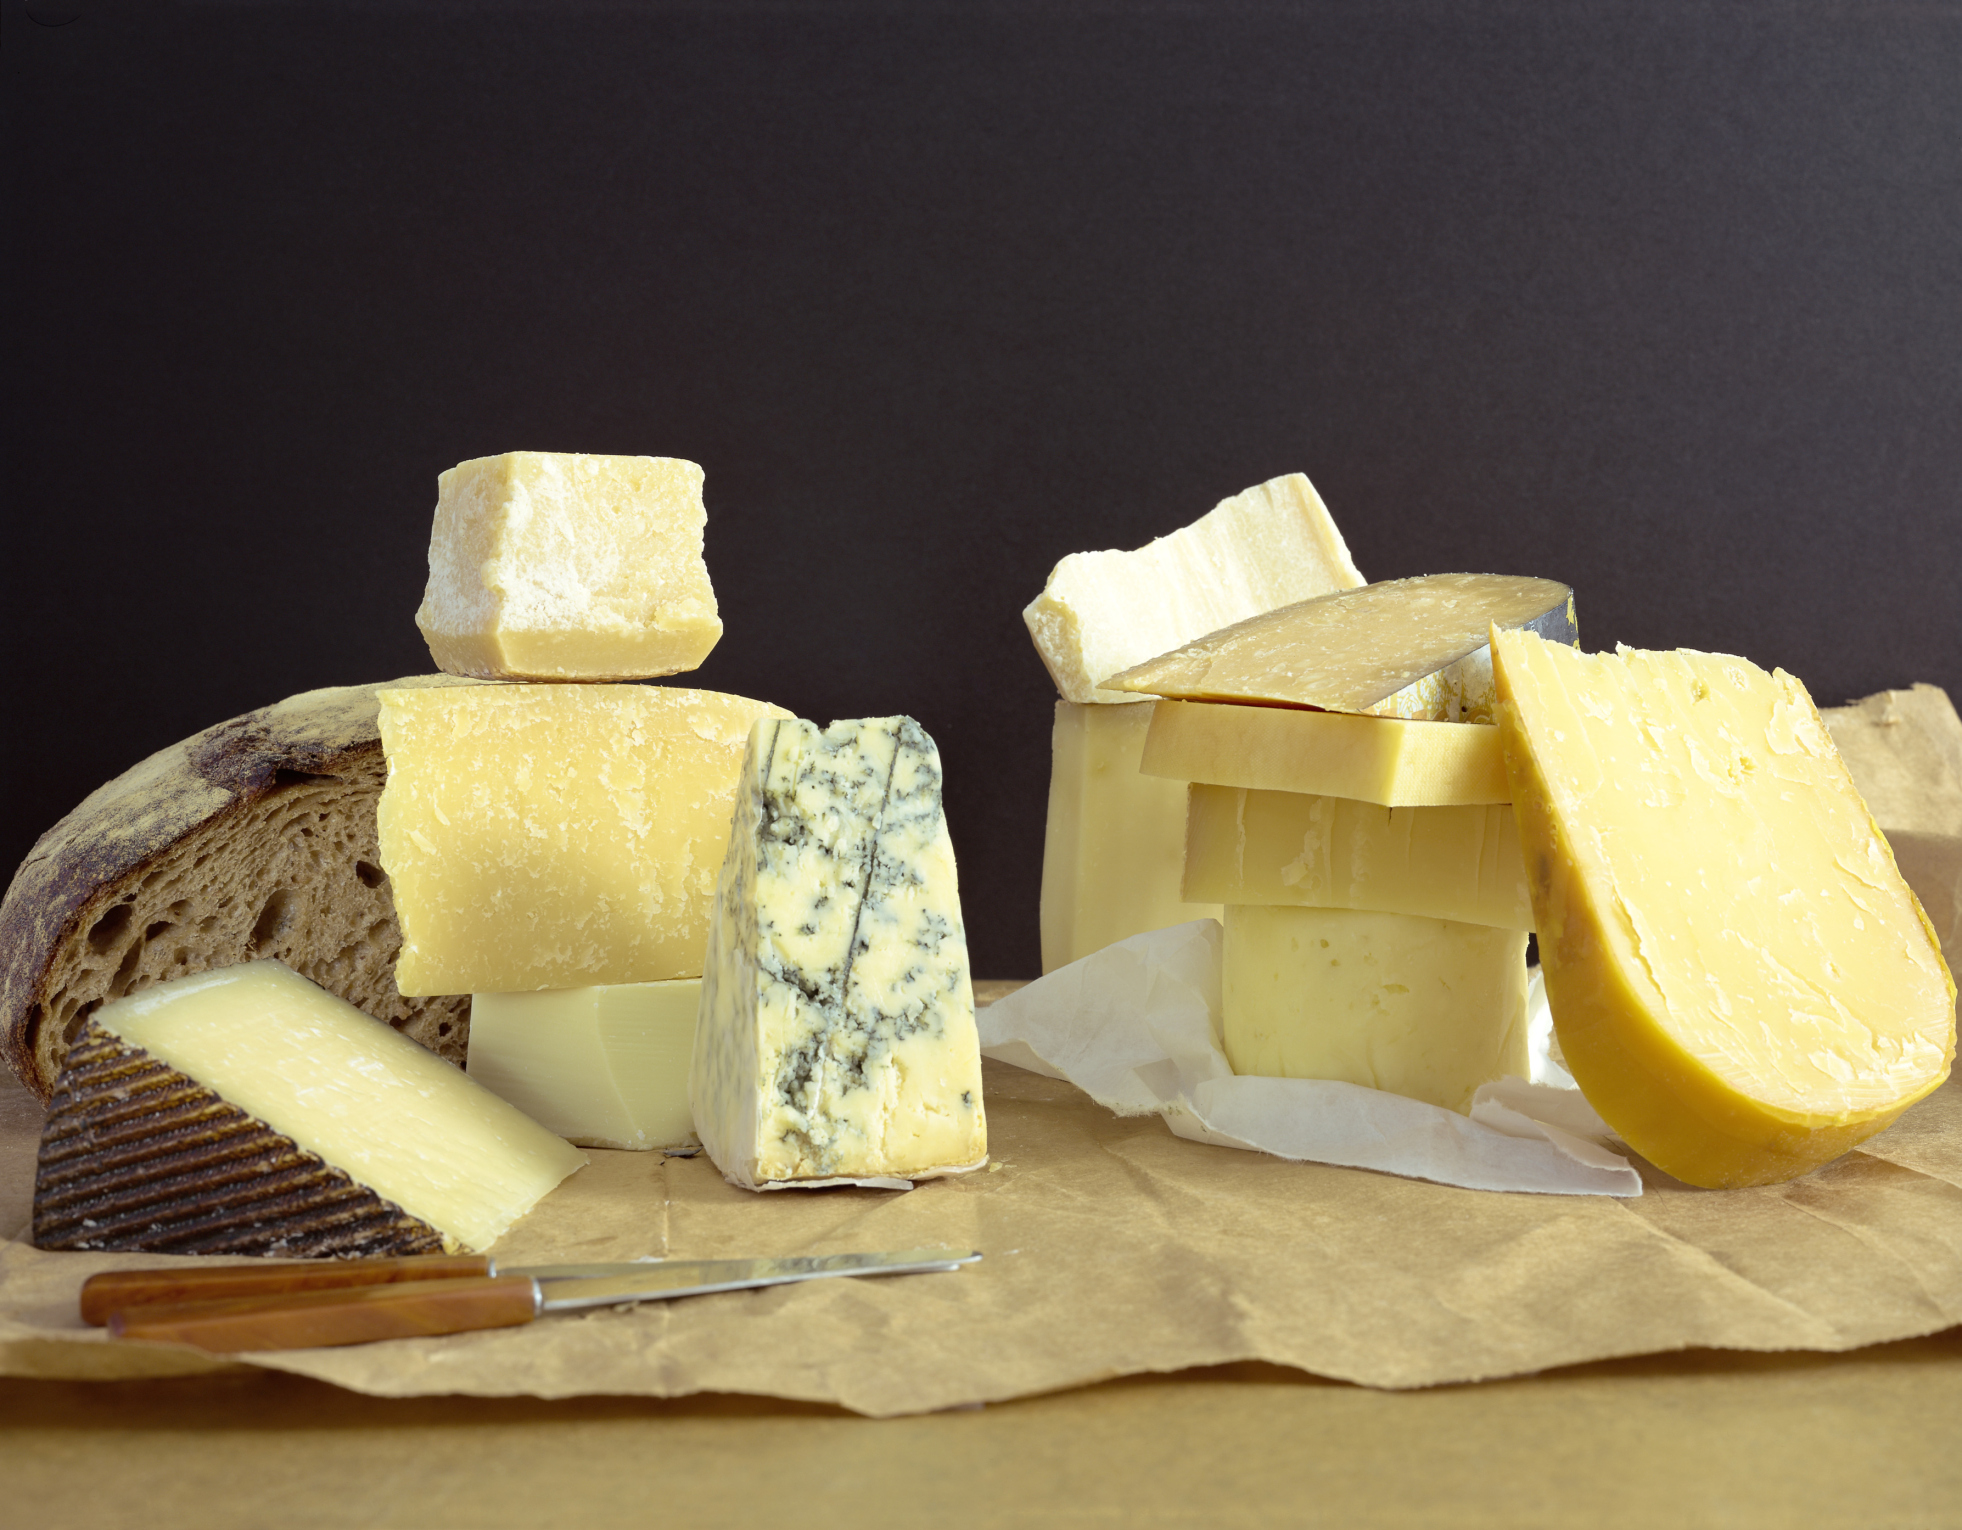 Cheese is a rich protein source.